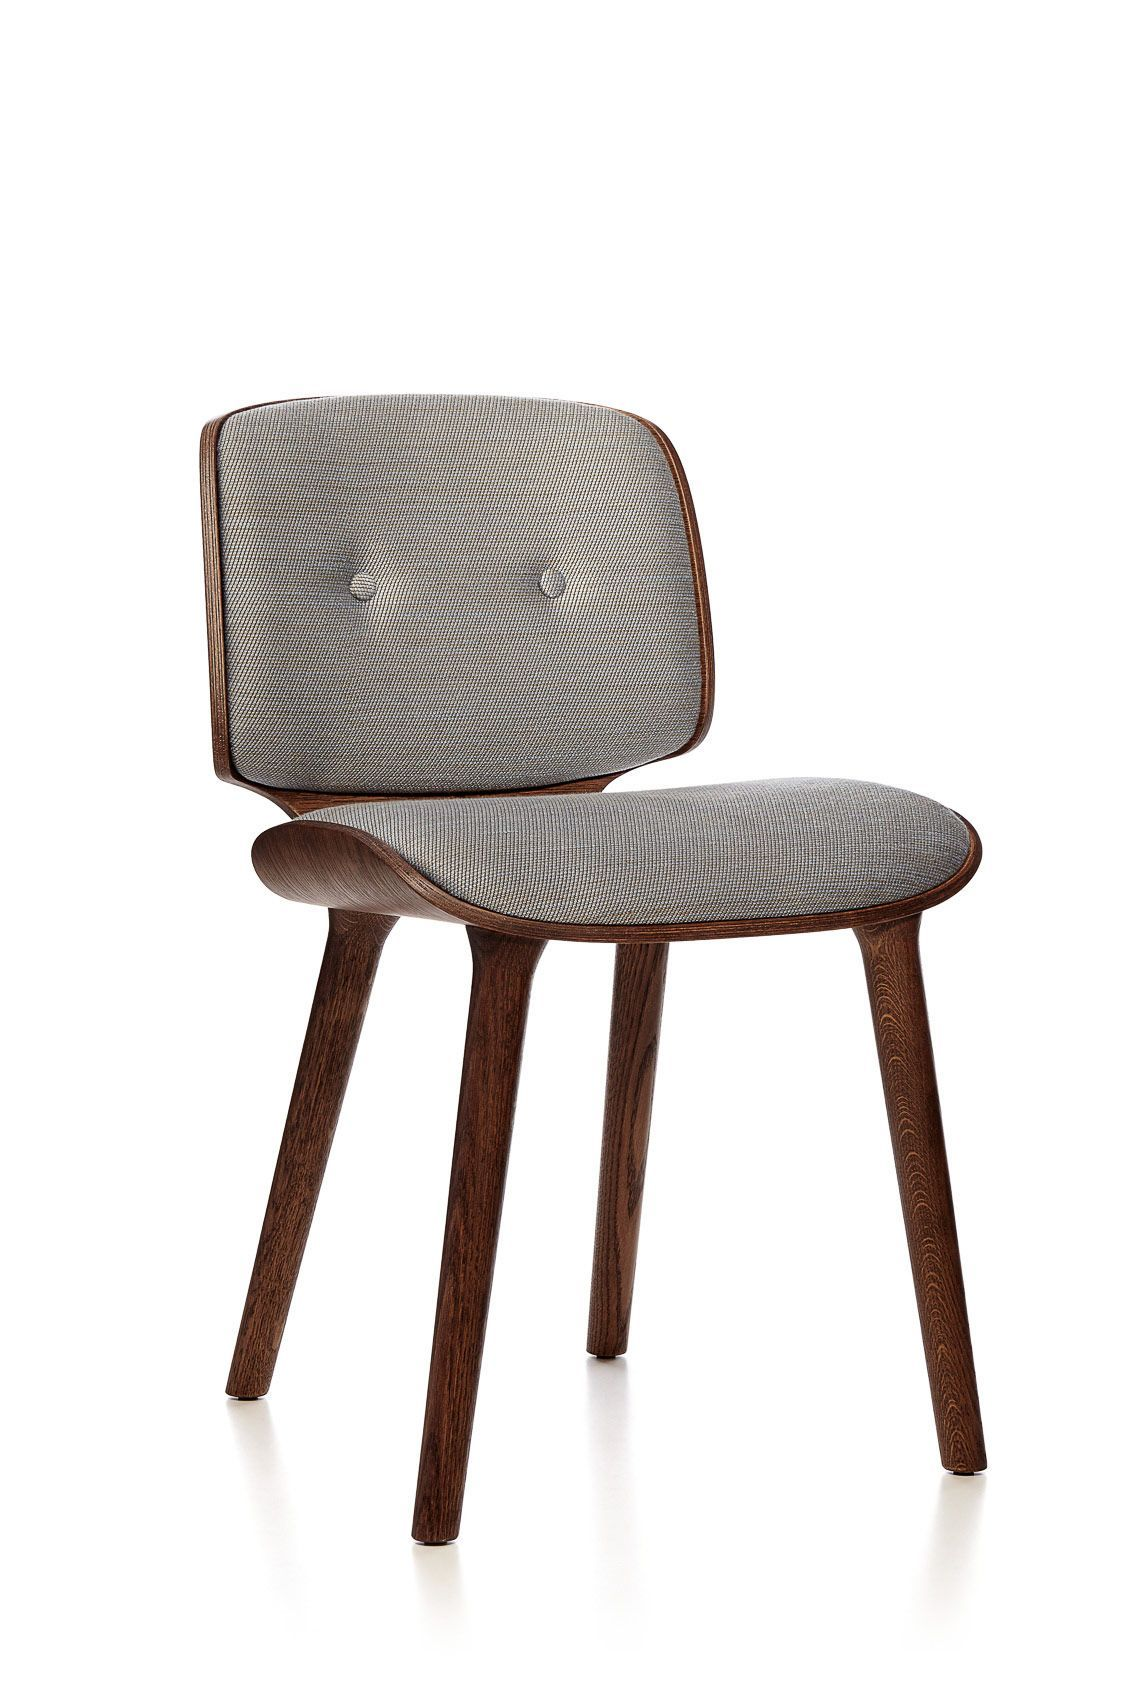 Nut dining chair by marcel wanders cute furniture for Cute side chairs